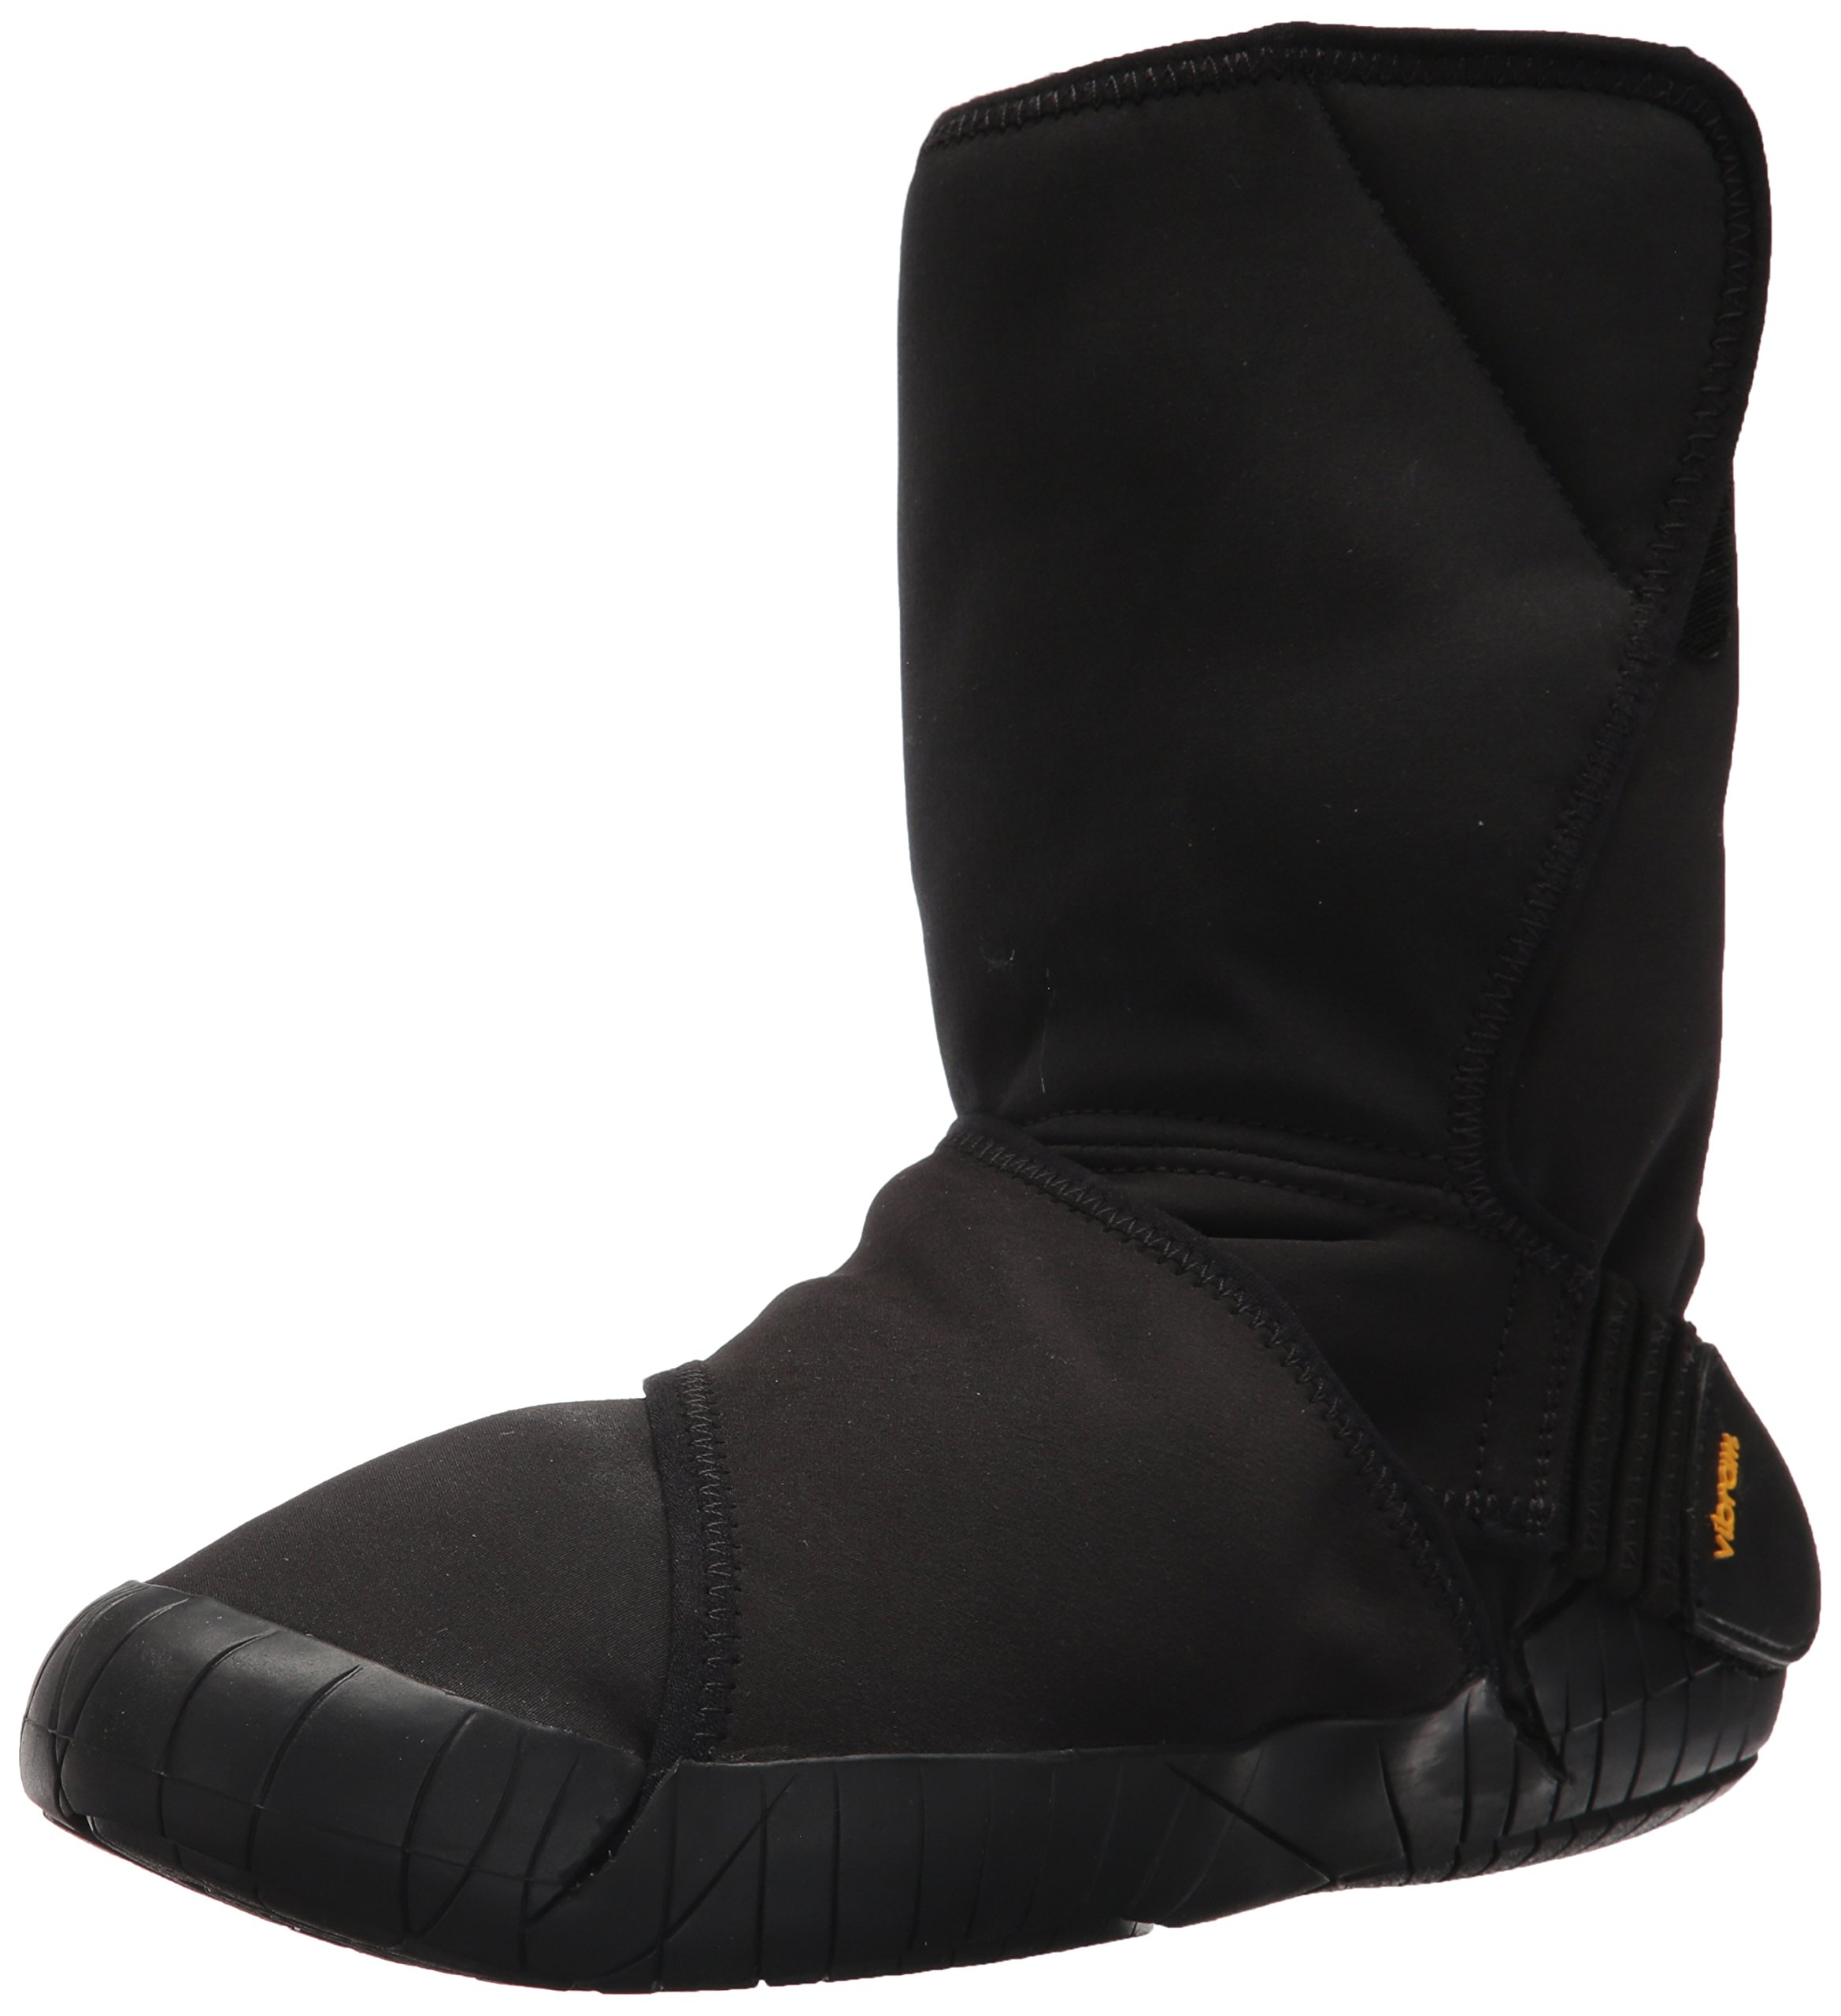 Vibram Furoshiki Mid Boot New Yorker Sneaker, Black, EU:46-47/UK Man:11-12/cm:29.5-30.5/US Man:12-13